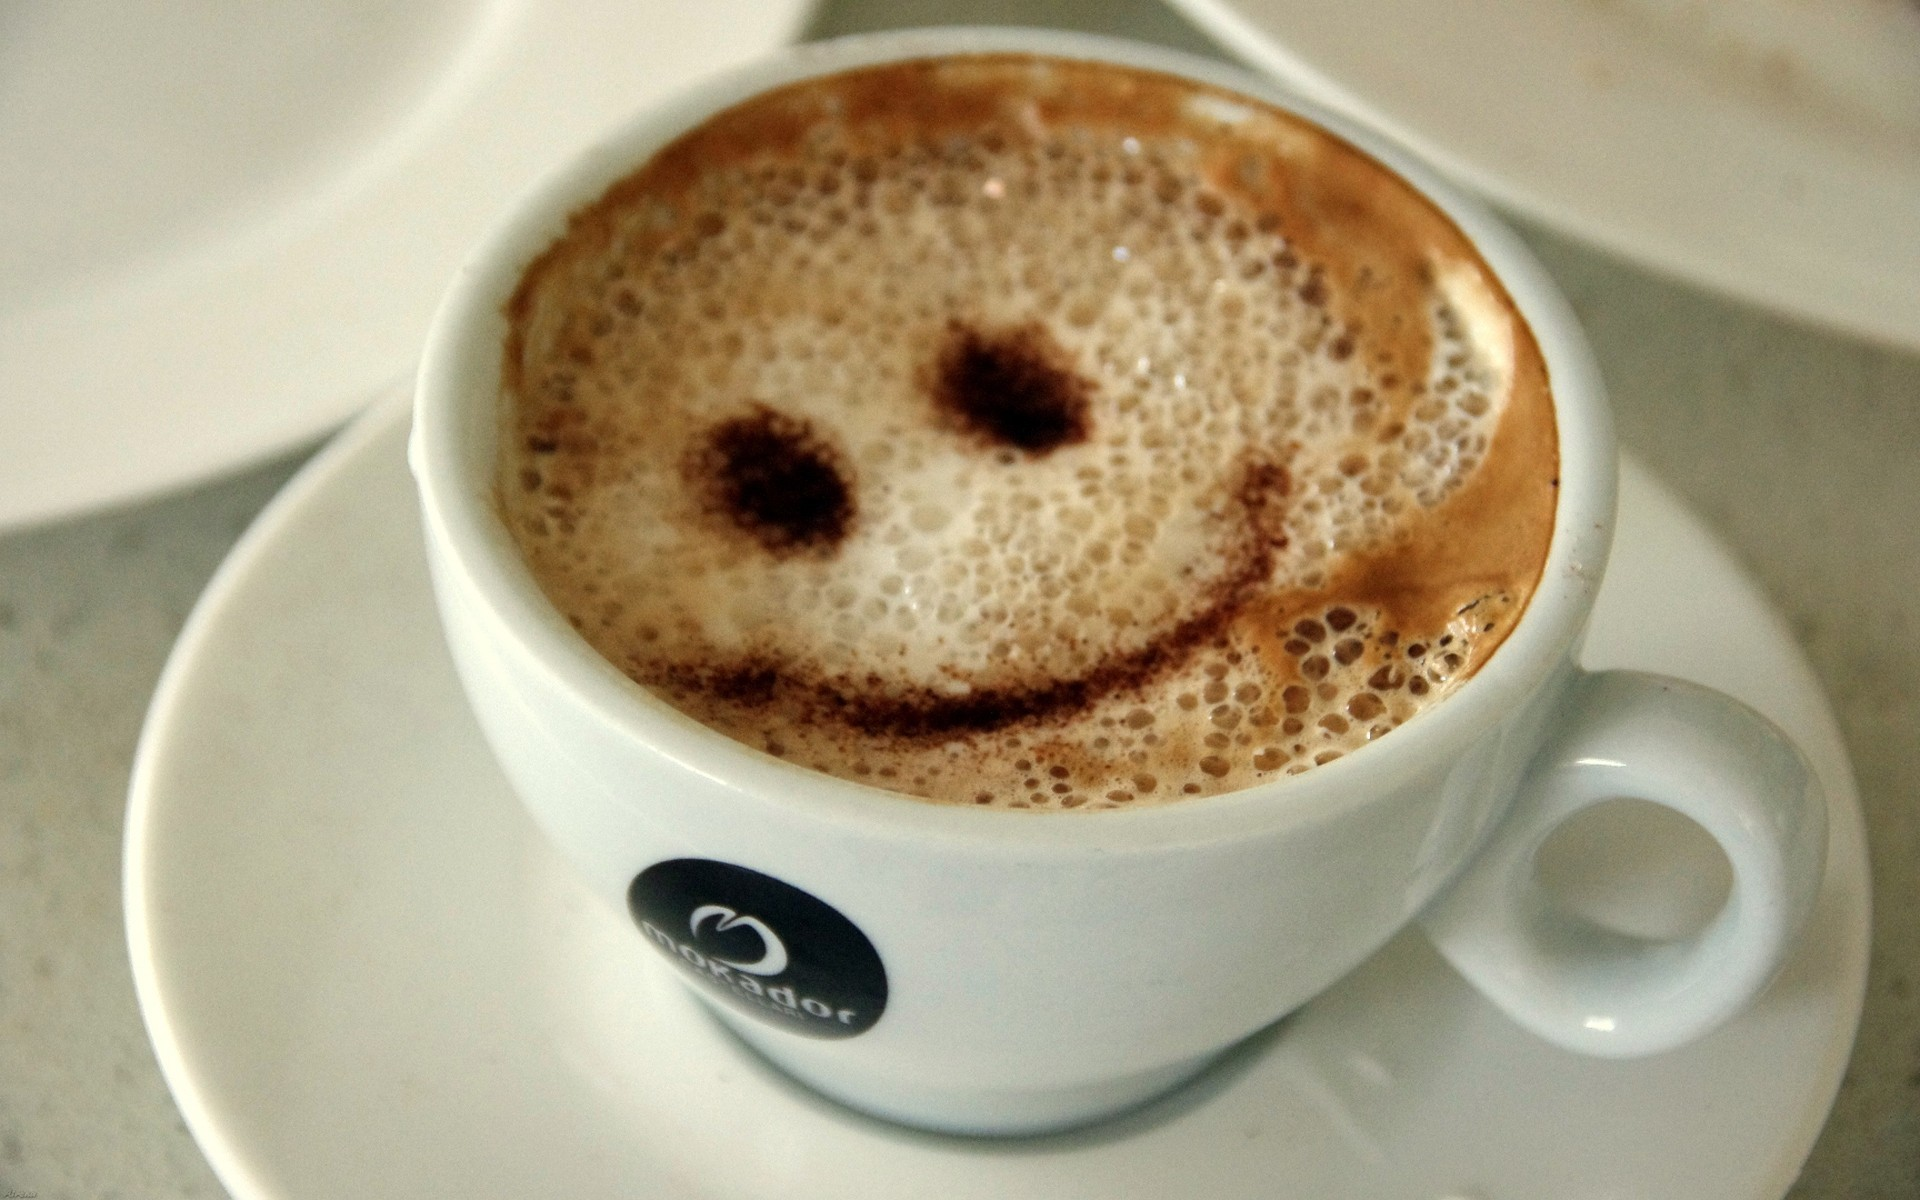 smiley smiley face coffee HD Wallpaper